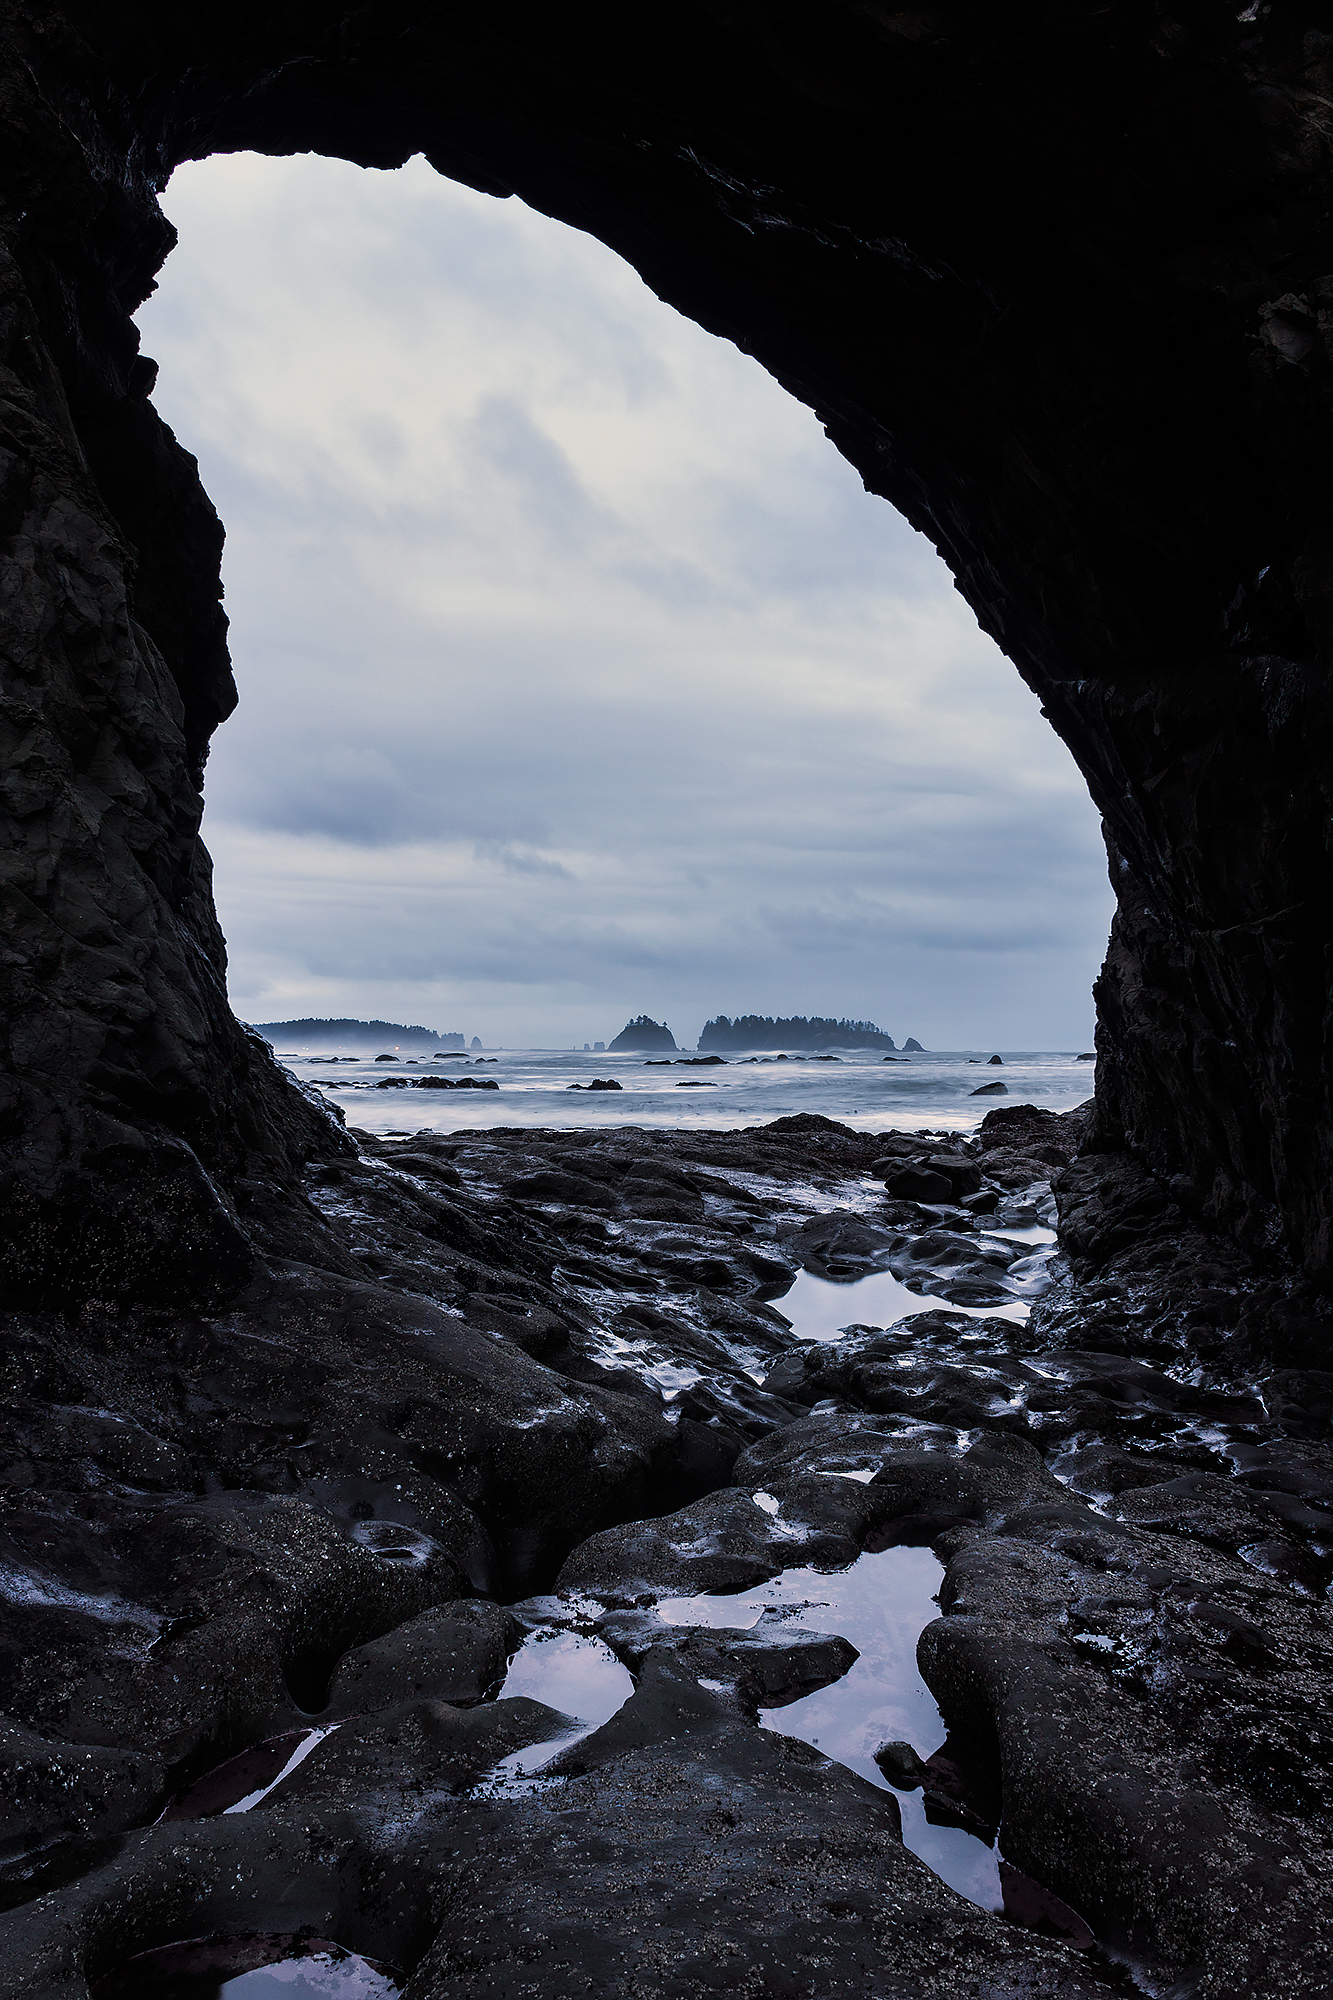 Hole in the wall, a natural tunnel formation on Rialto Beach near La Push, WA.